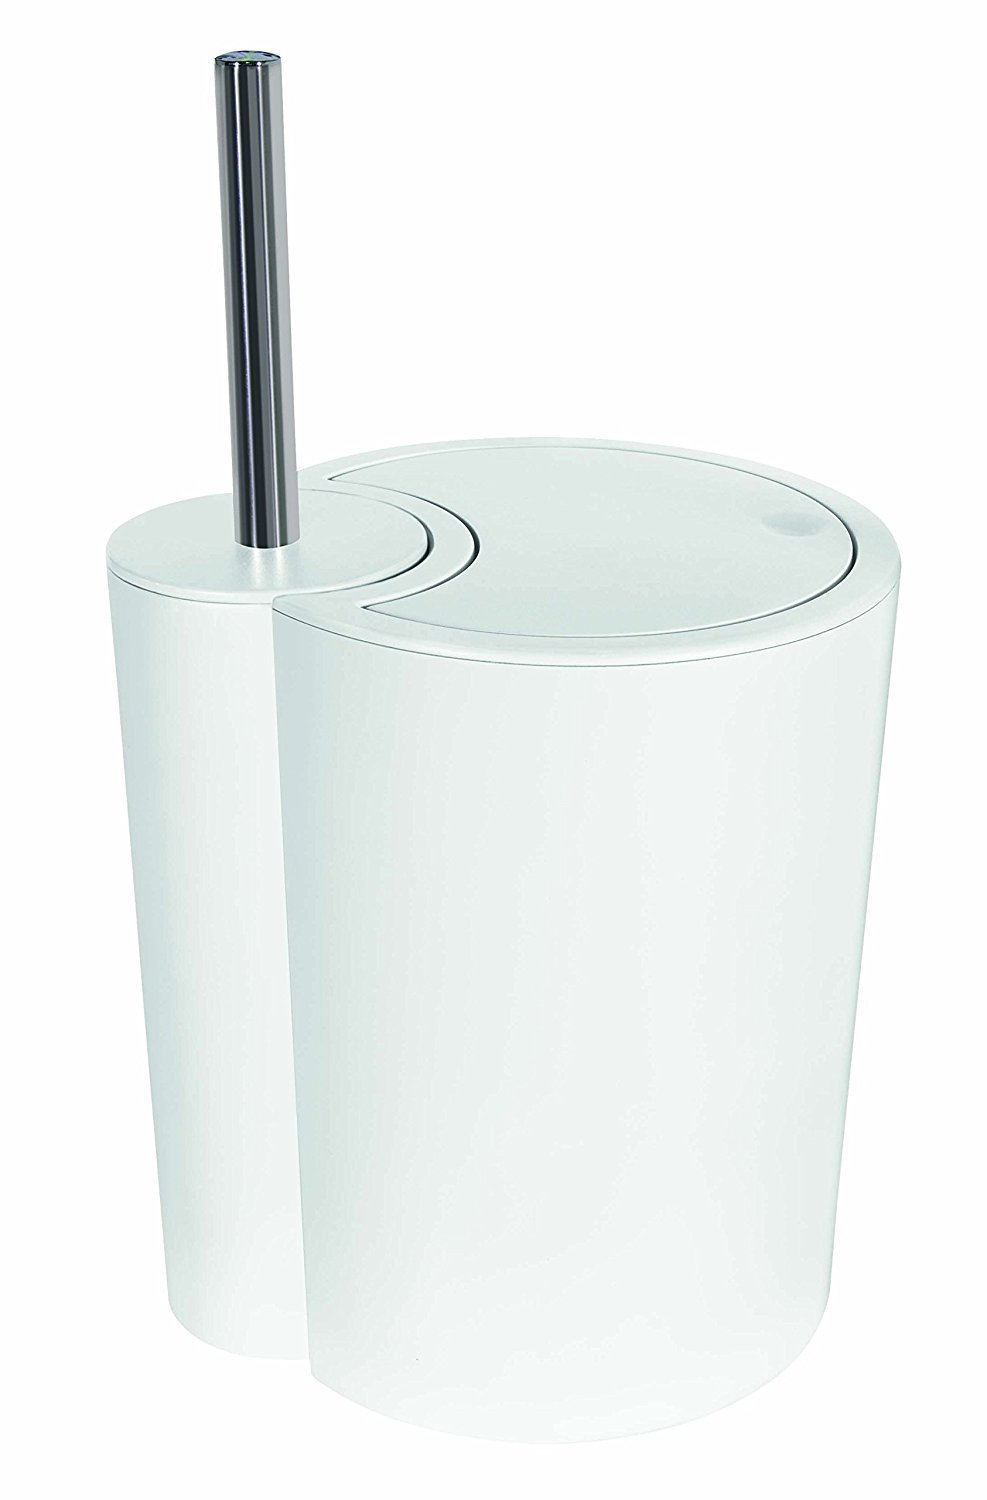 Spirella Sun and Moon 2-in-1 Toilet Brush and Waste Bin, Plastic, White 10.18146